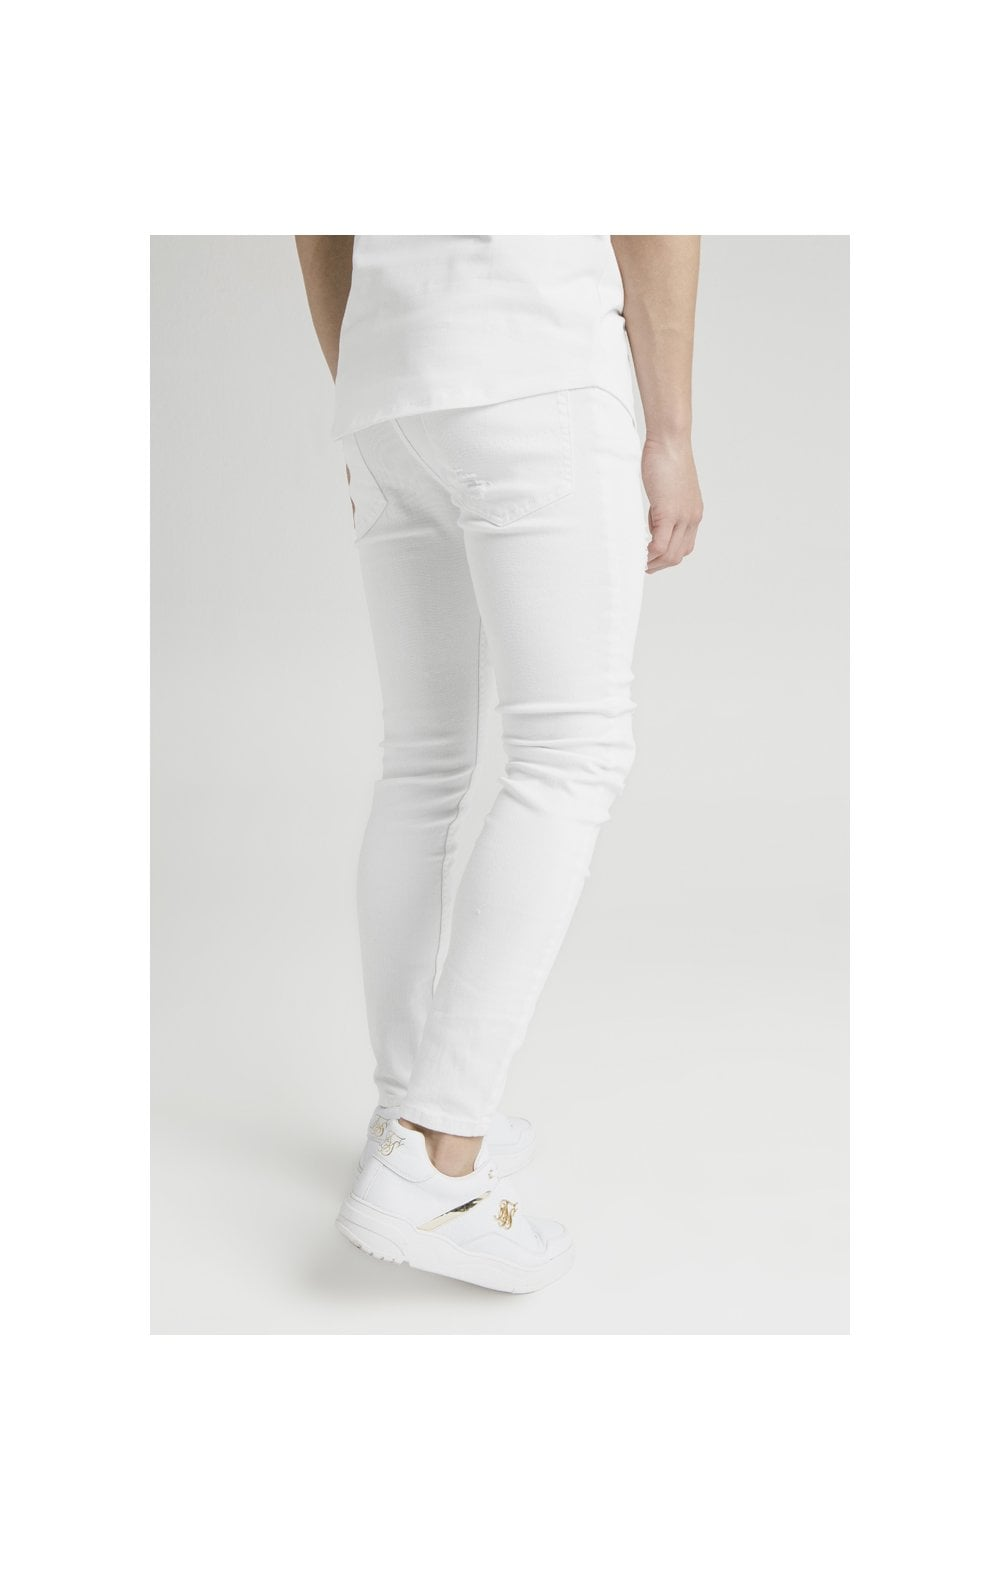 Illusive London Distressed Skinny Denims - White (2)